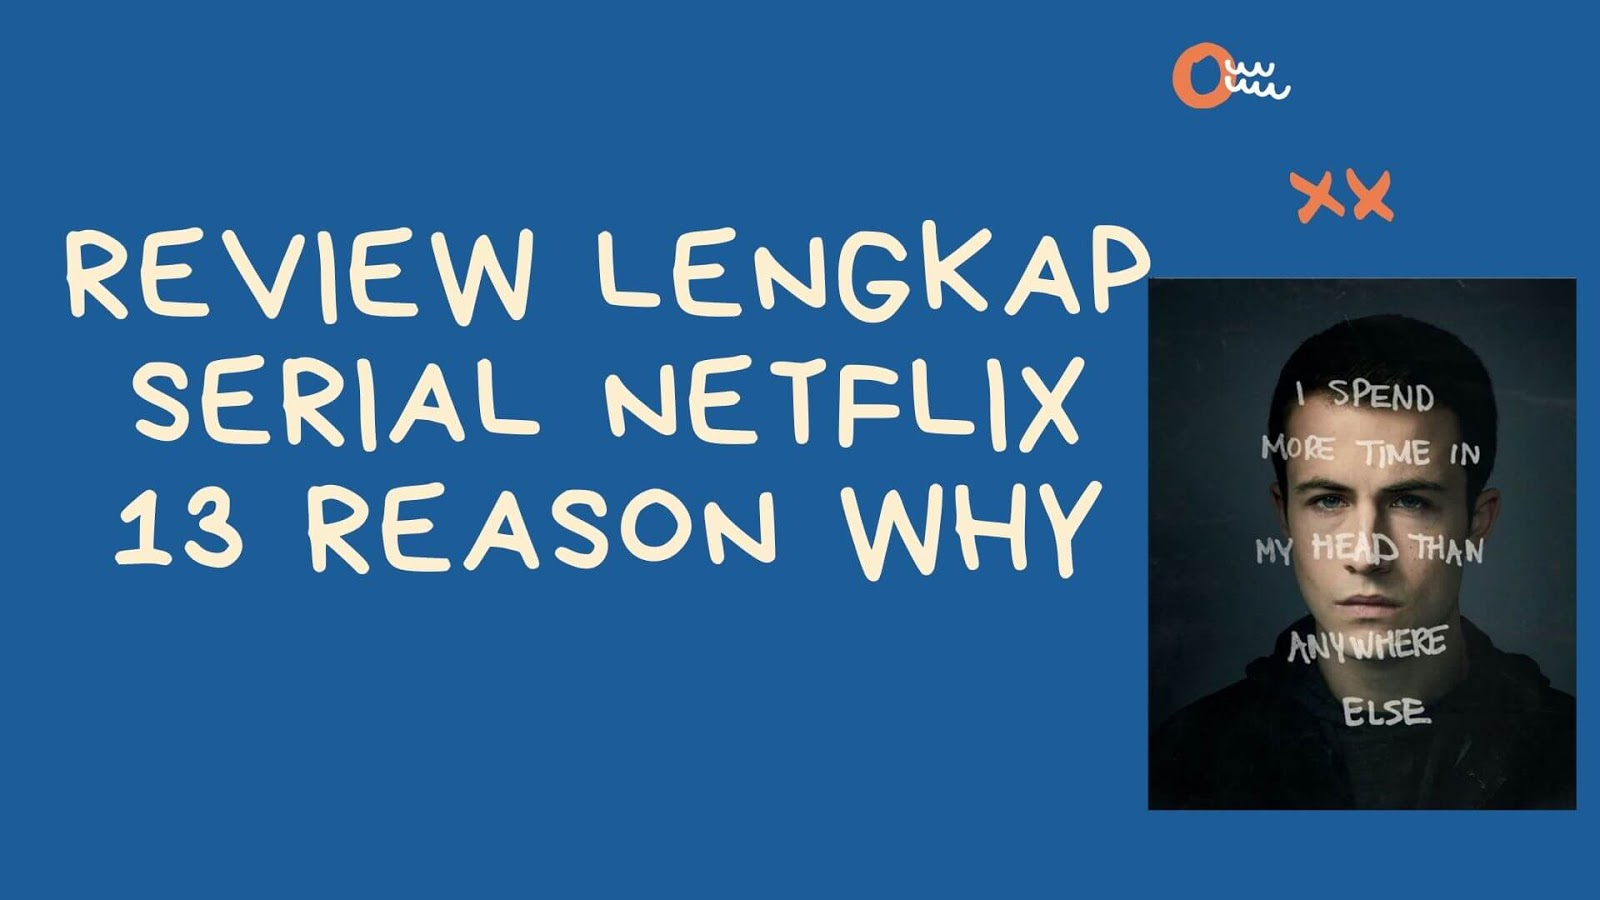 Review 13 Reason Why di Netflix (ulasan semua season)